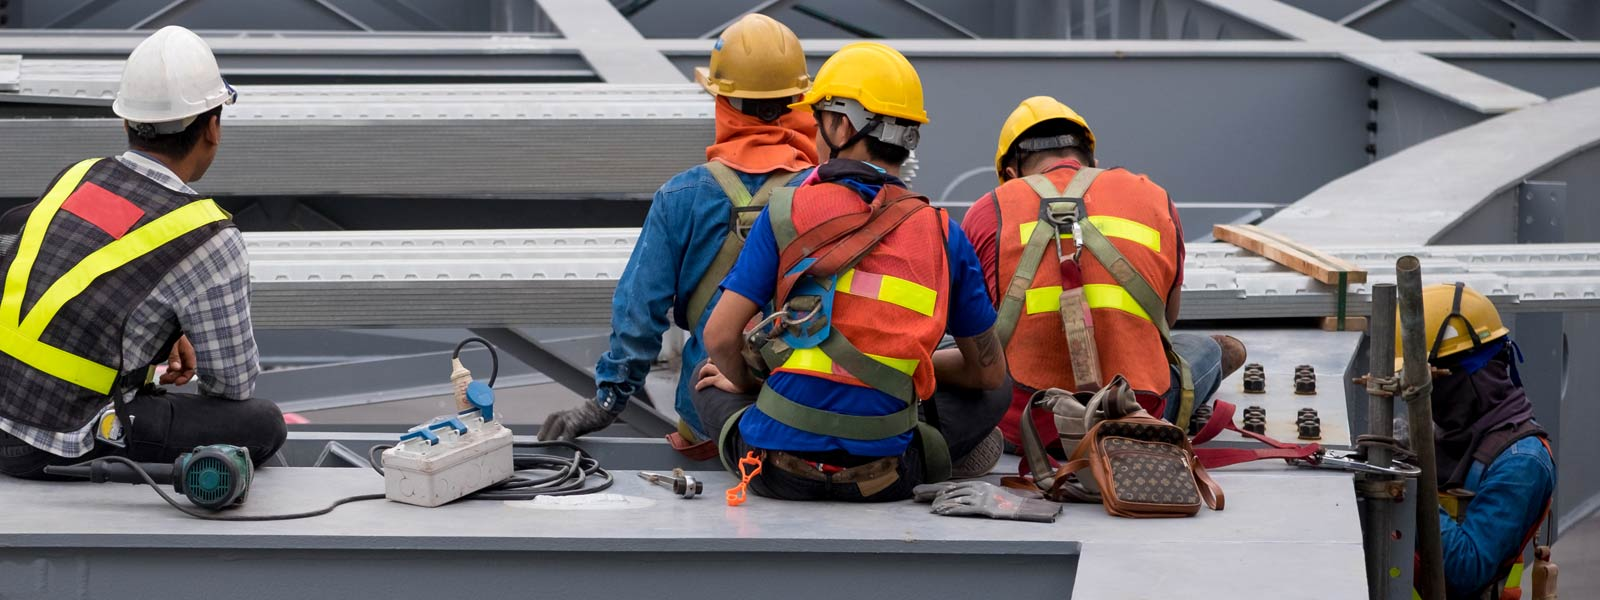 Construction-Workers-Wearing-Safety-Supplies Unlimited